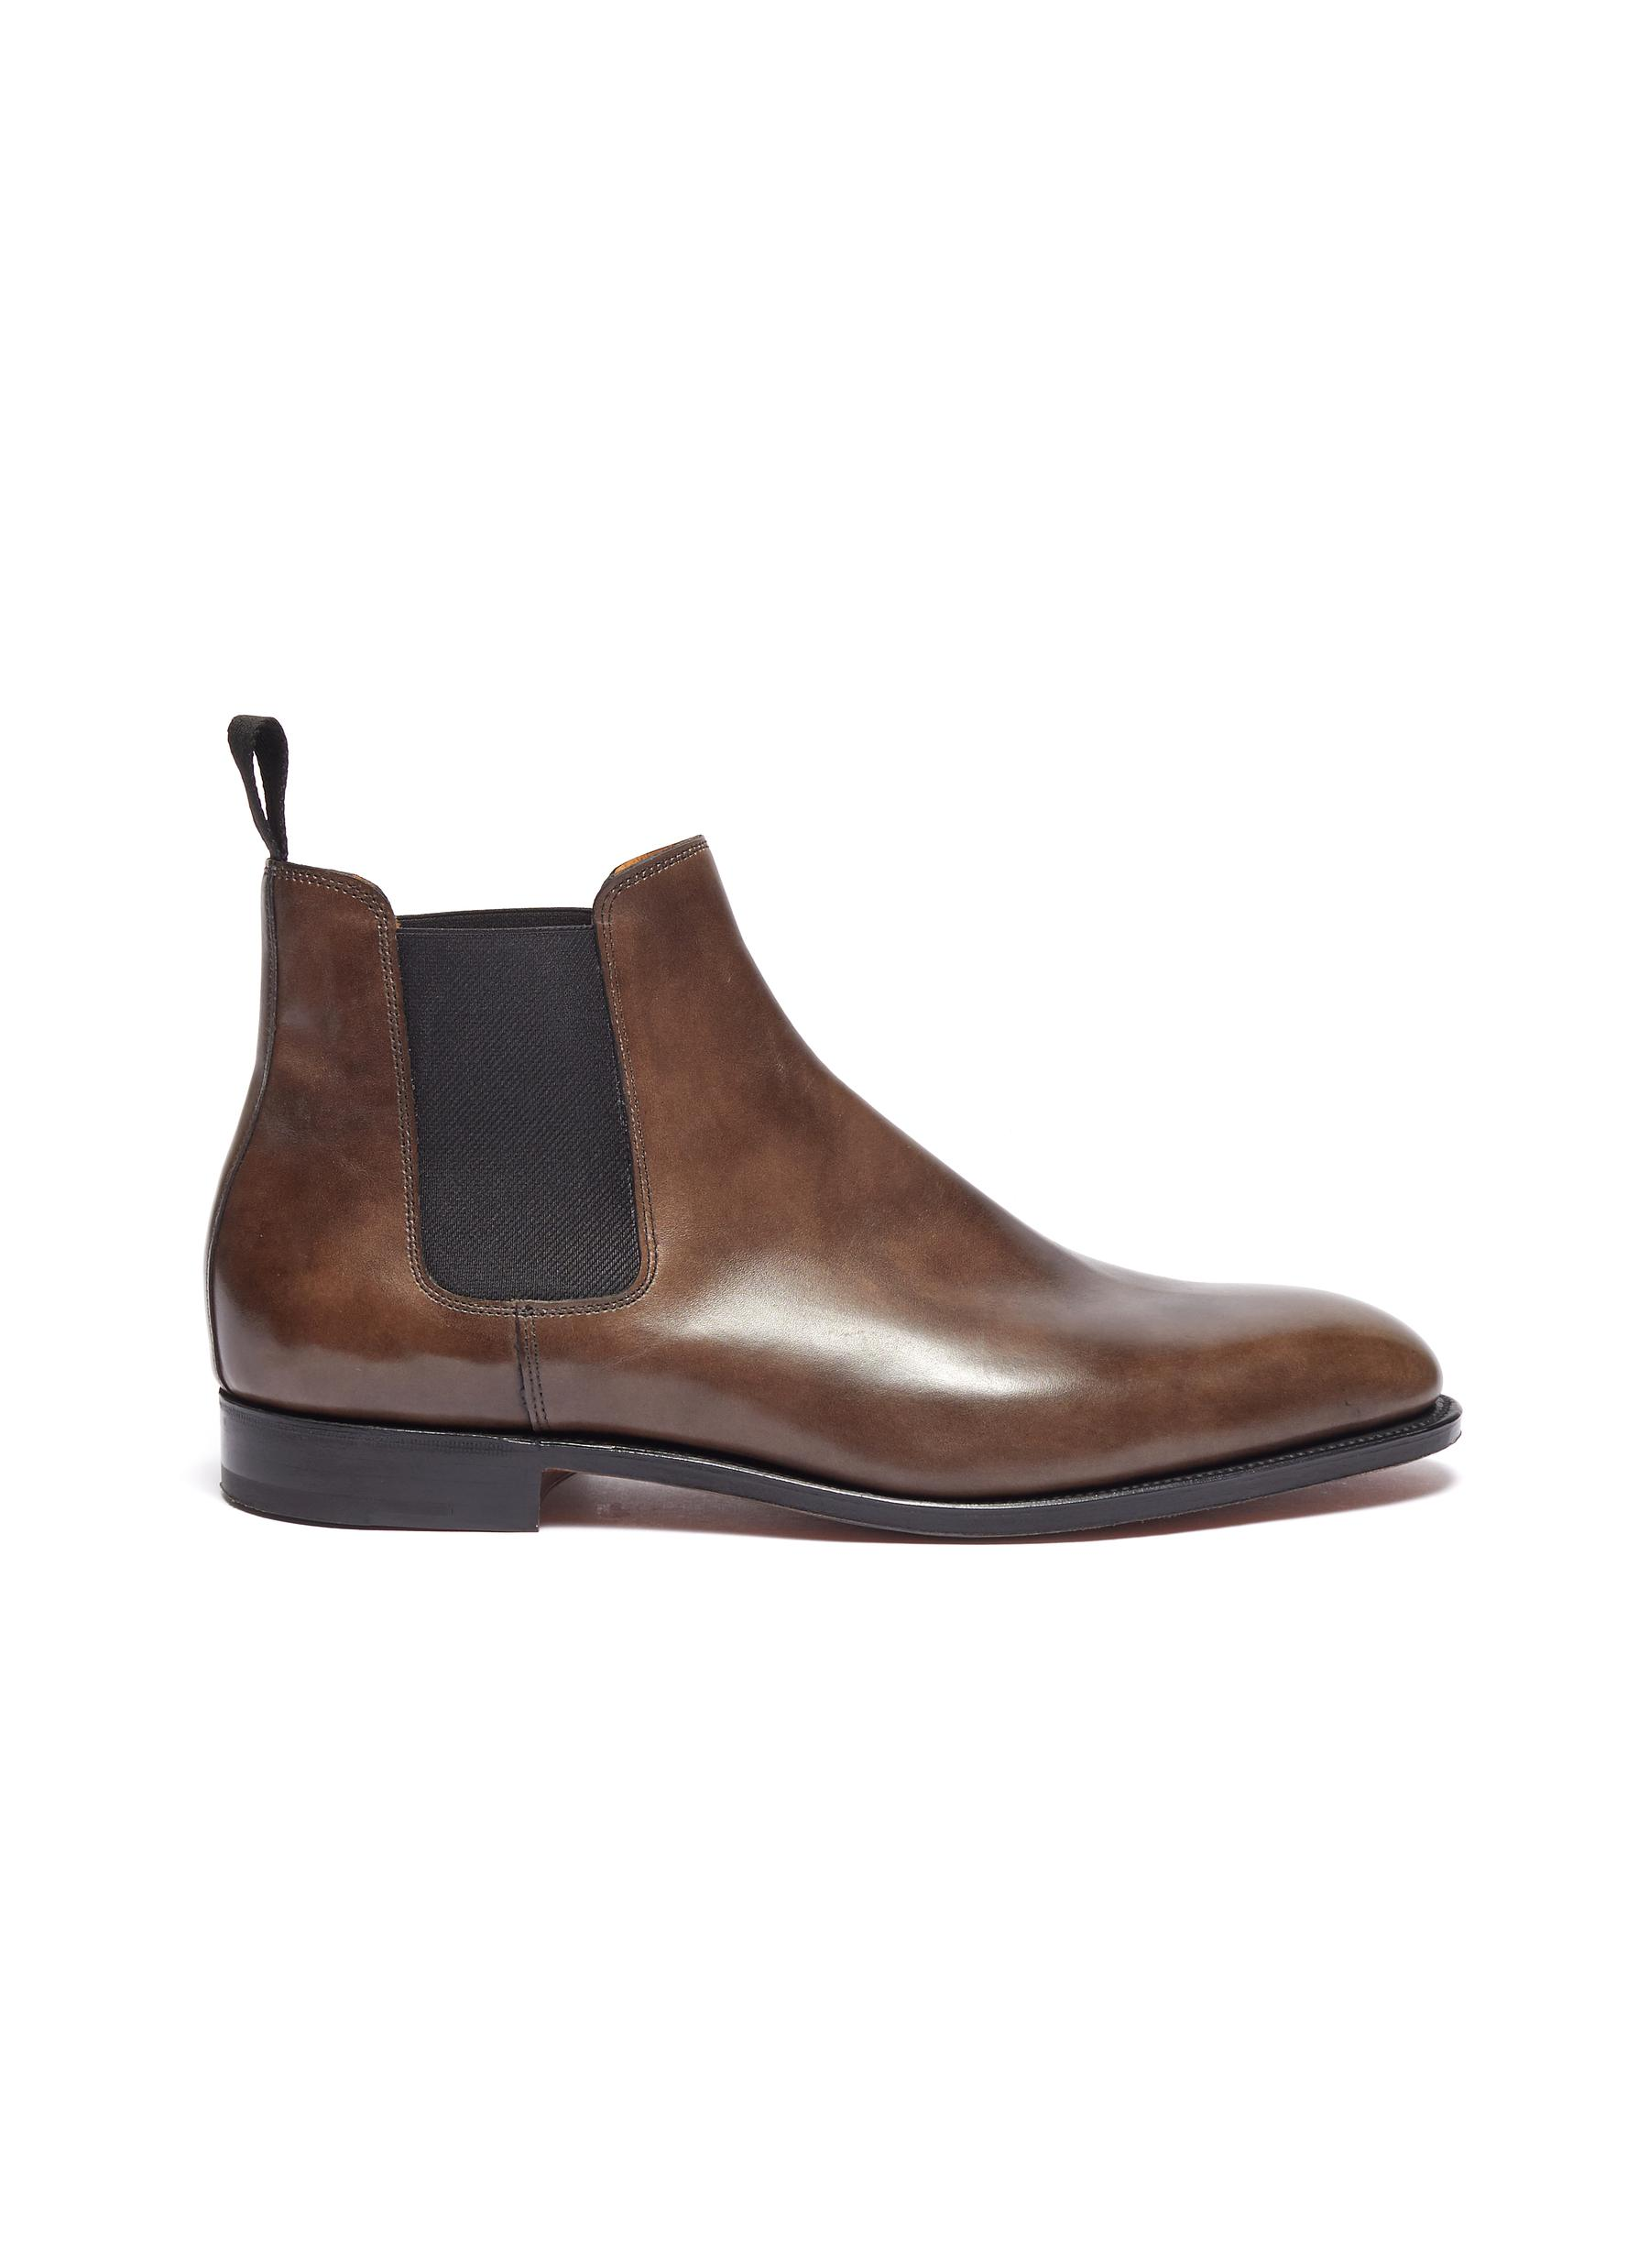 'Lawry' leather Chelsea boots